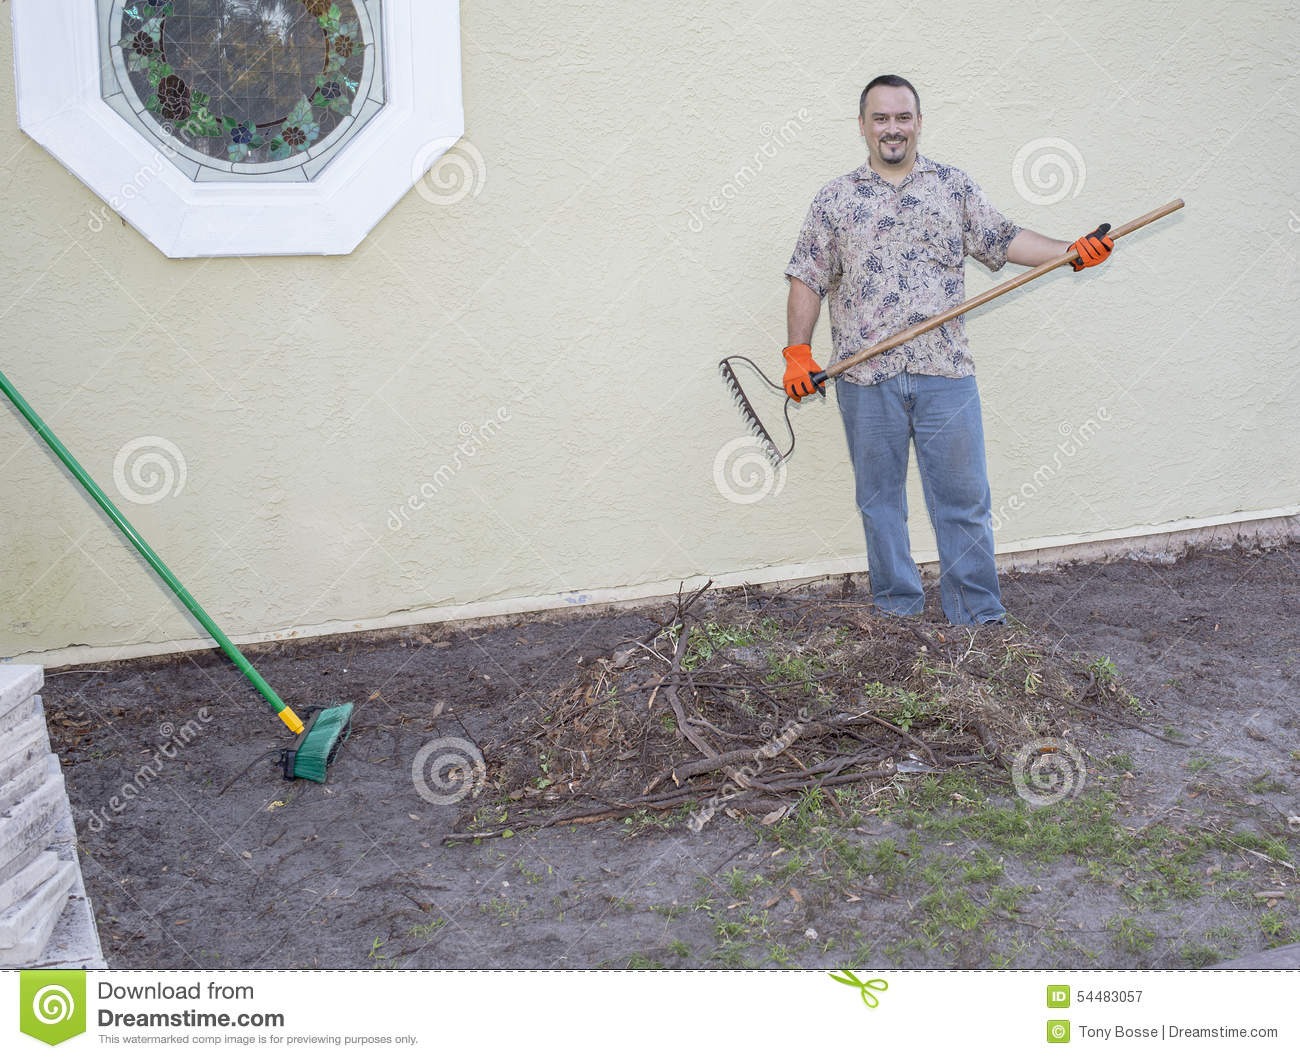 Gardener landscaper digging shovel retro stock photo for Digging ground dream meaning